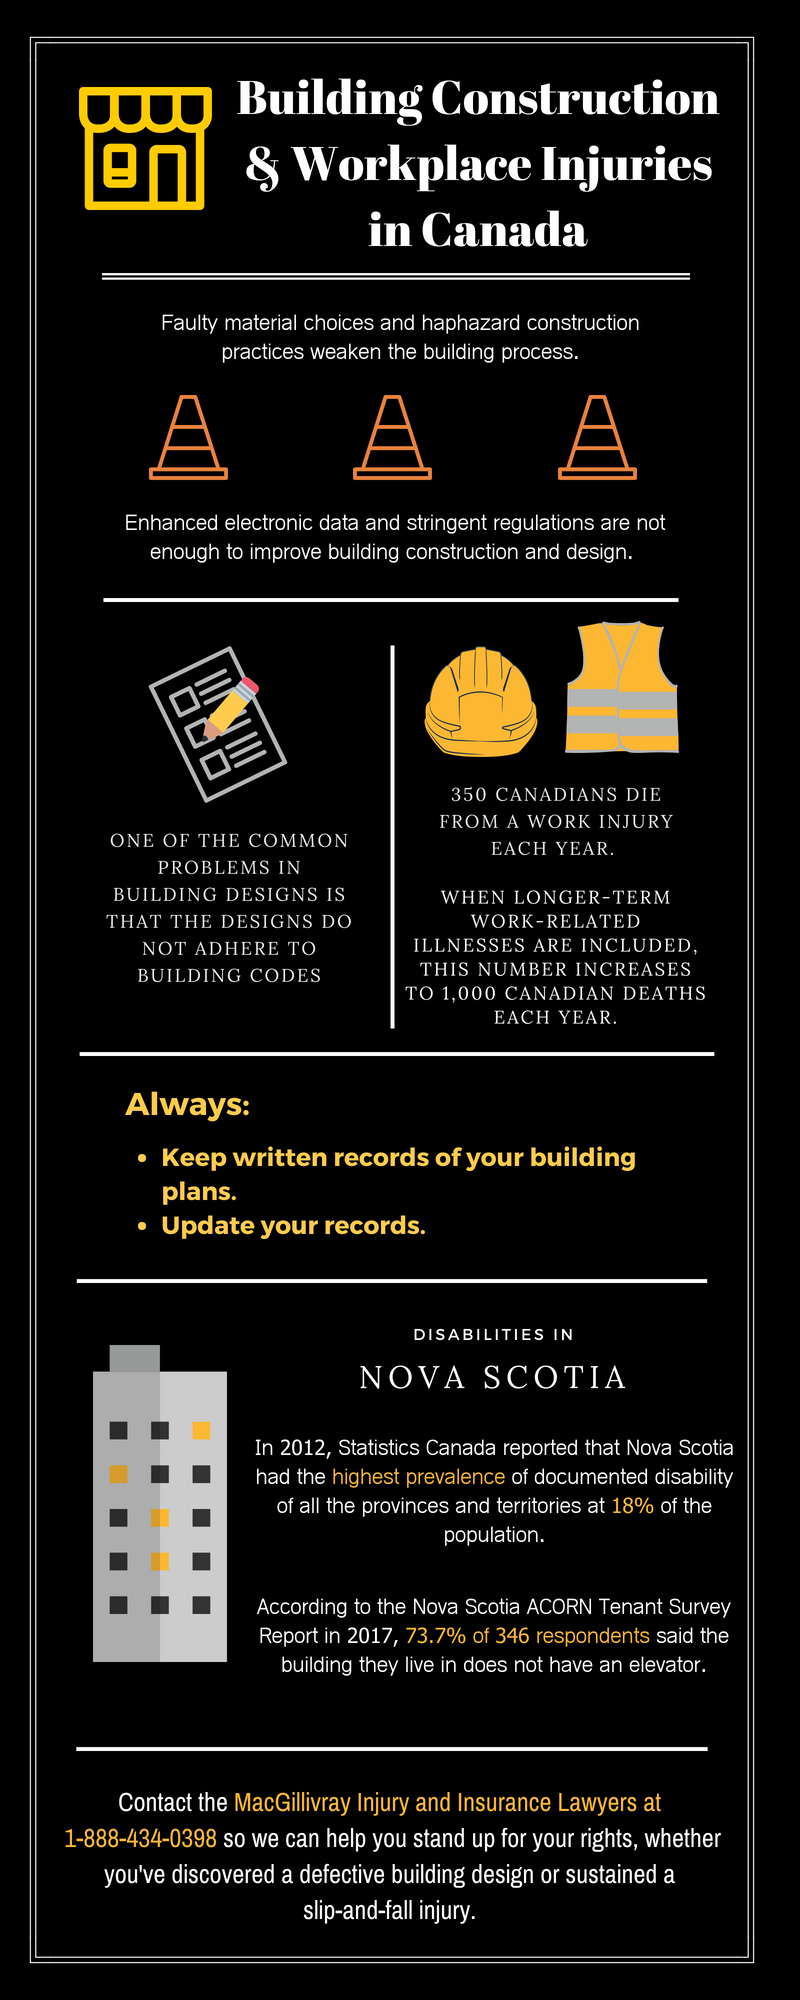 MacGillivray__Building Construction _ Workplace Injuries in Canada Infographic_06-12-18_SM-KT.jpg